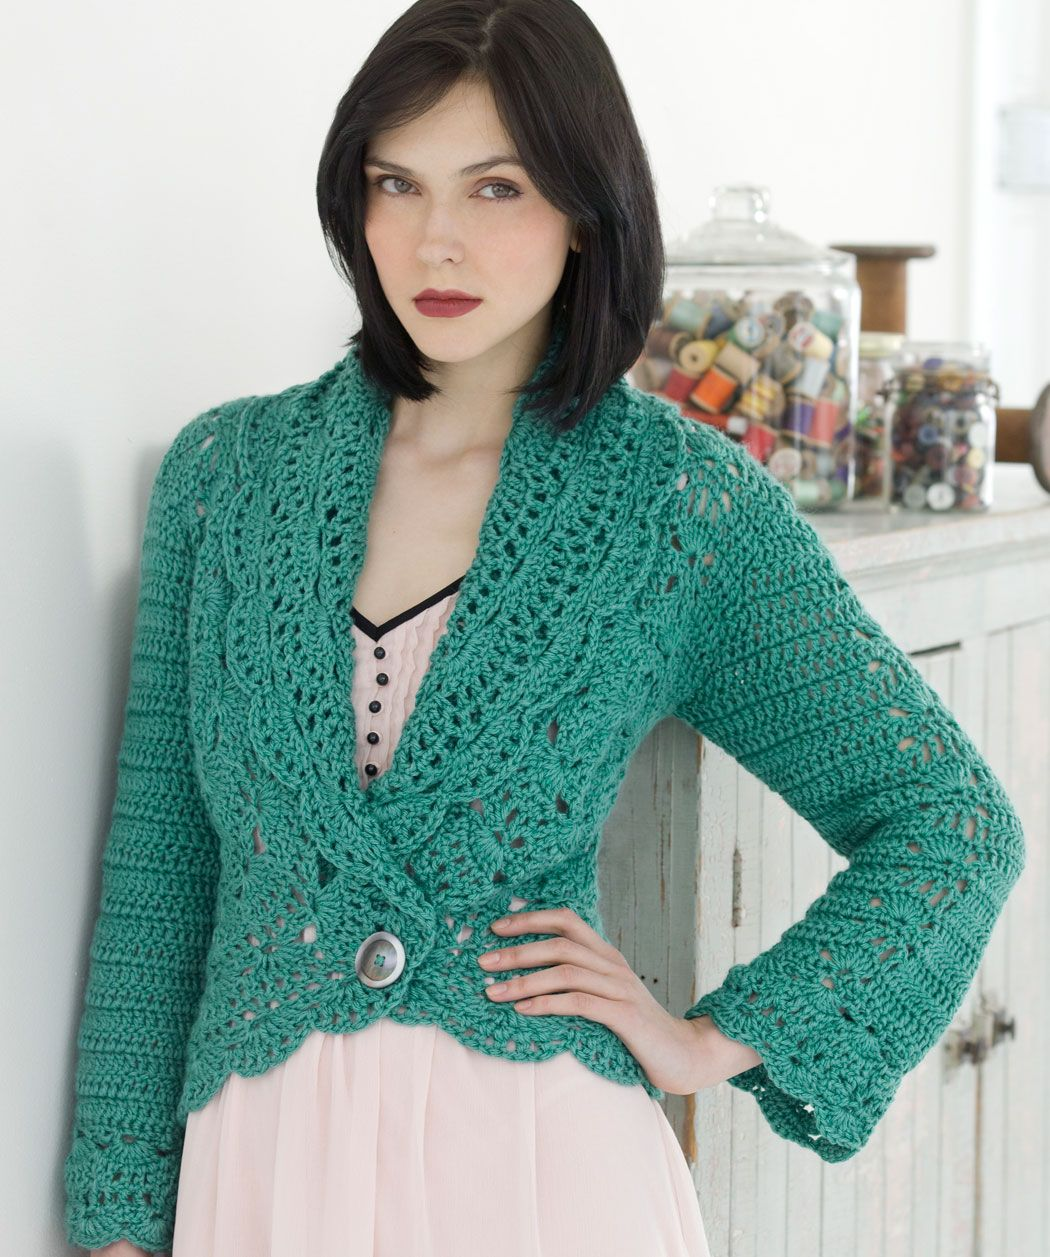 Free+Crochet+Sweater+Patterns | Baby Crochet Patterns – Only The ...